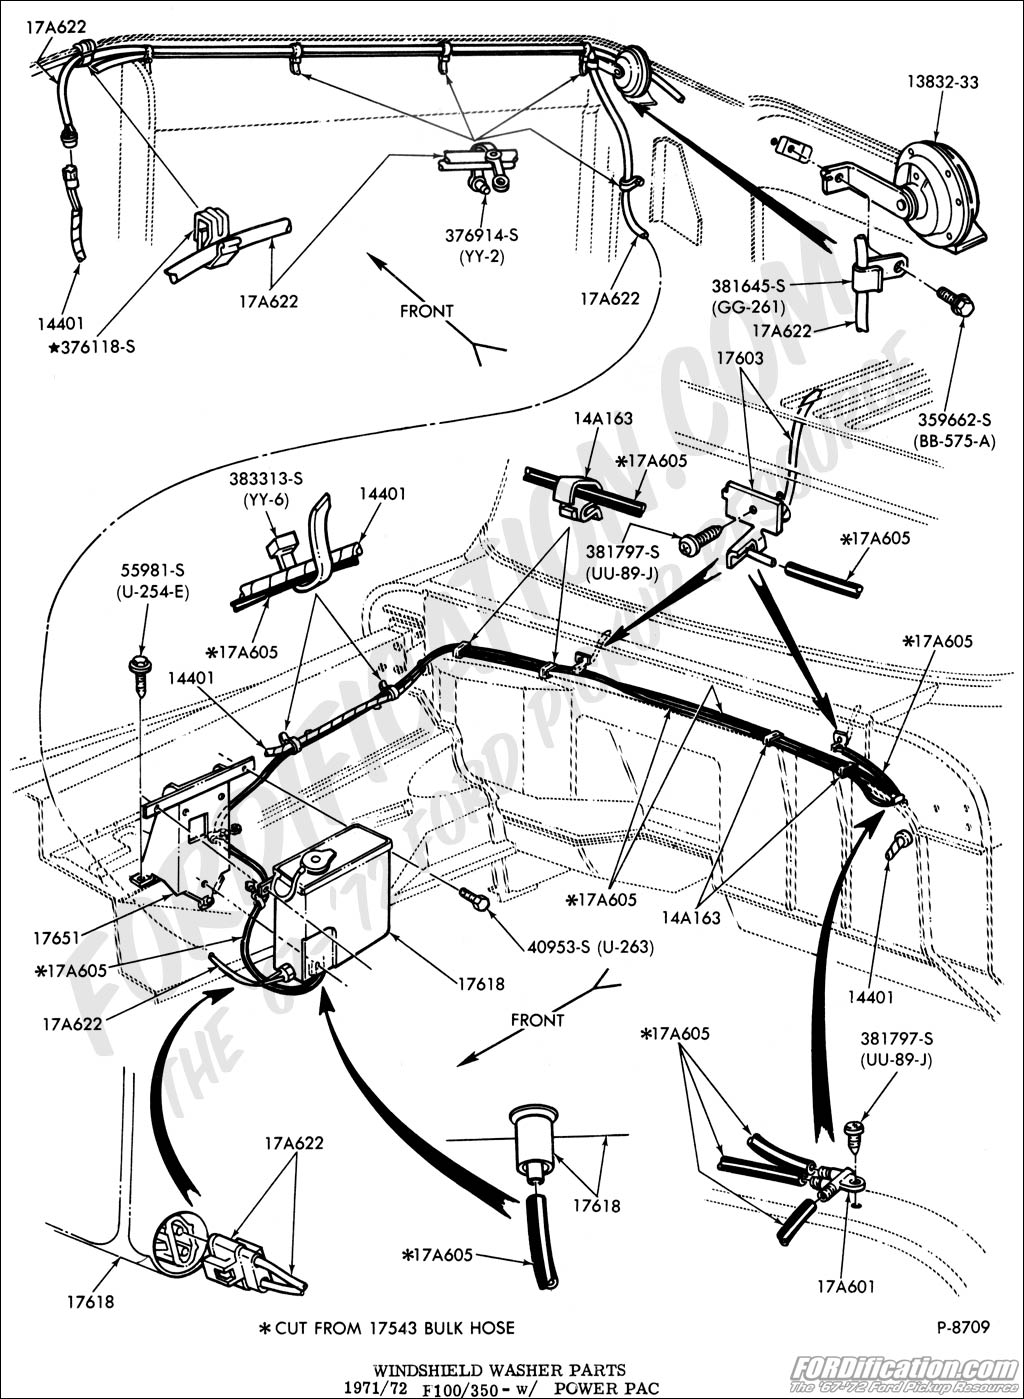 Ford F 250 Wiring Diagram For 1965 Library 1968 F250 Truck Technical Drawings And Schematics Section I Electrical